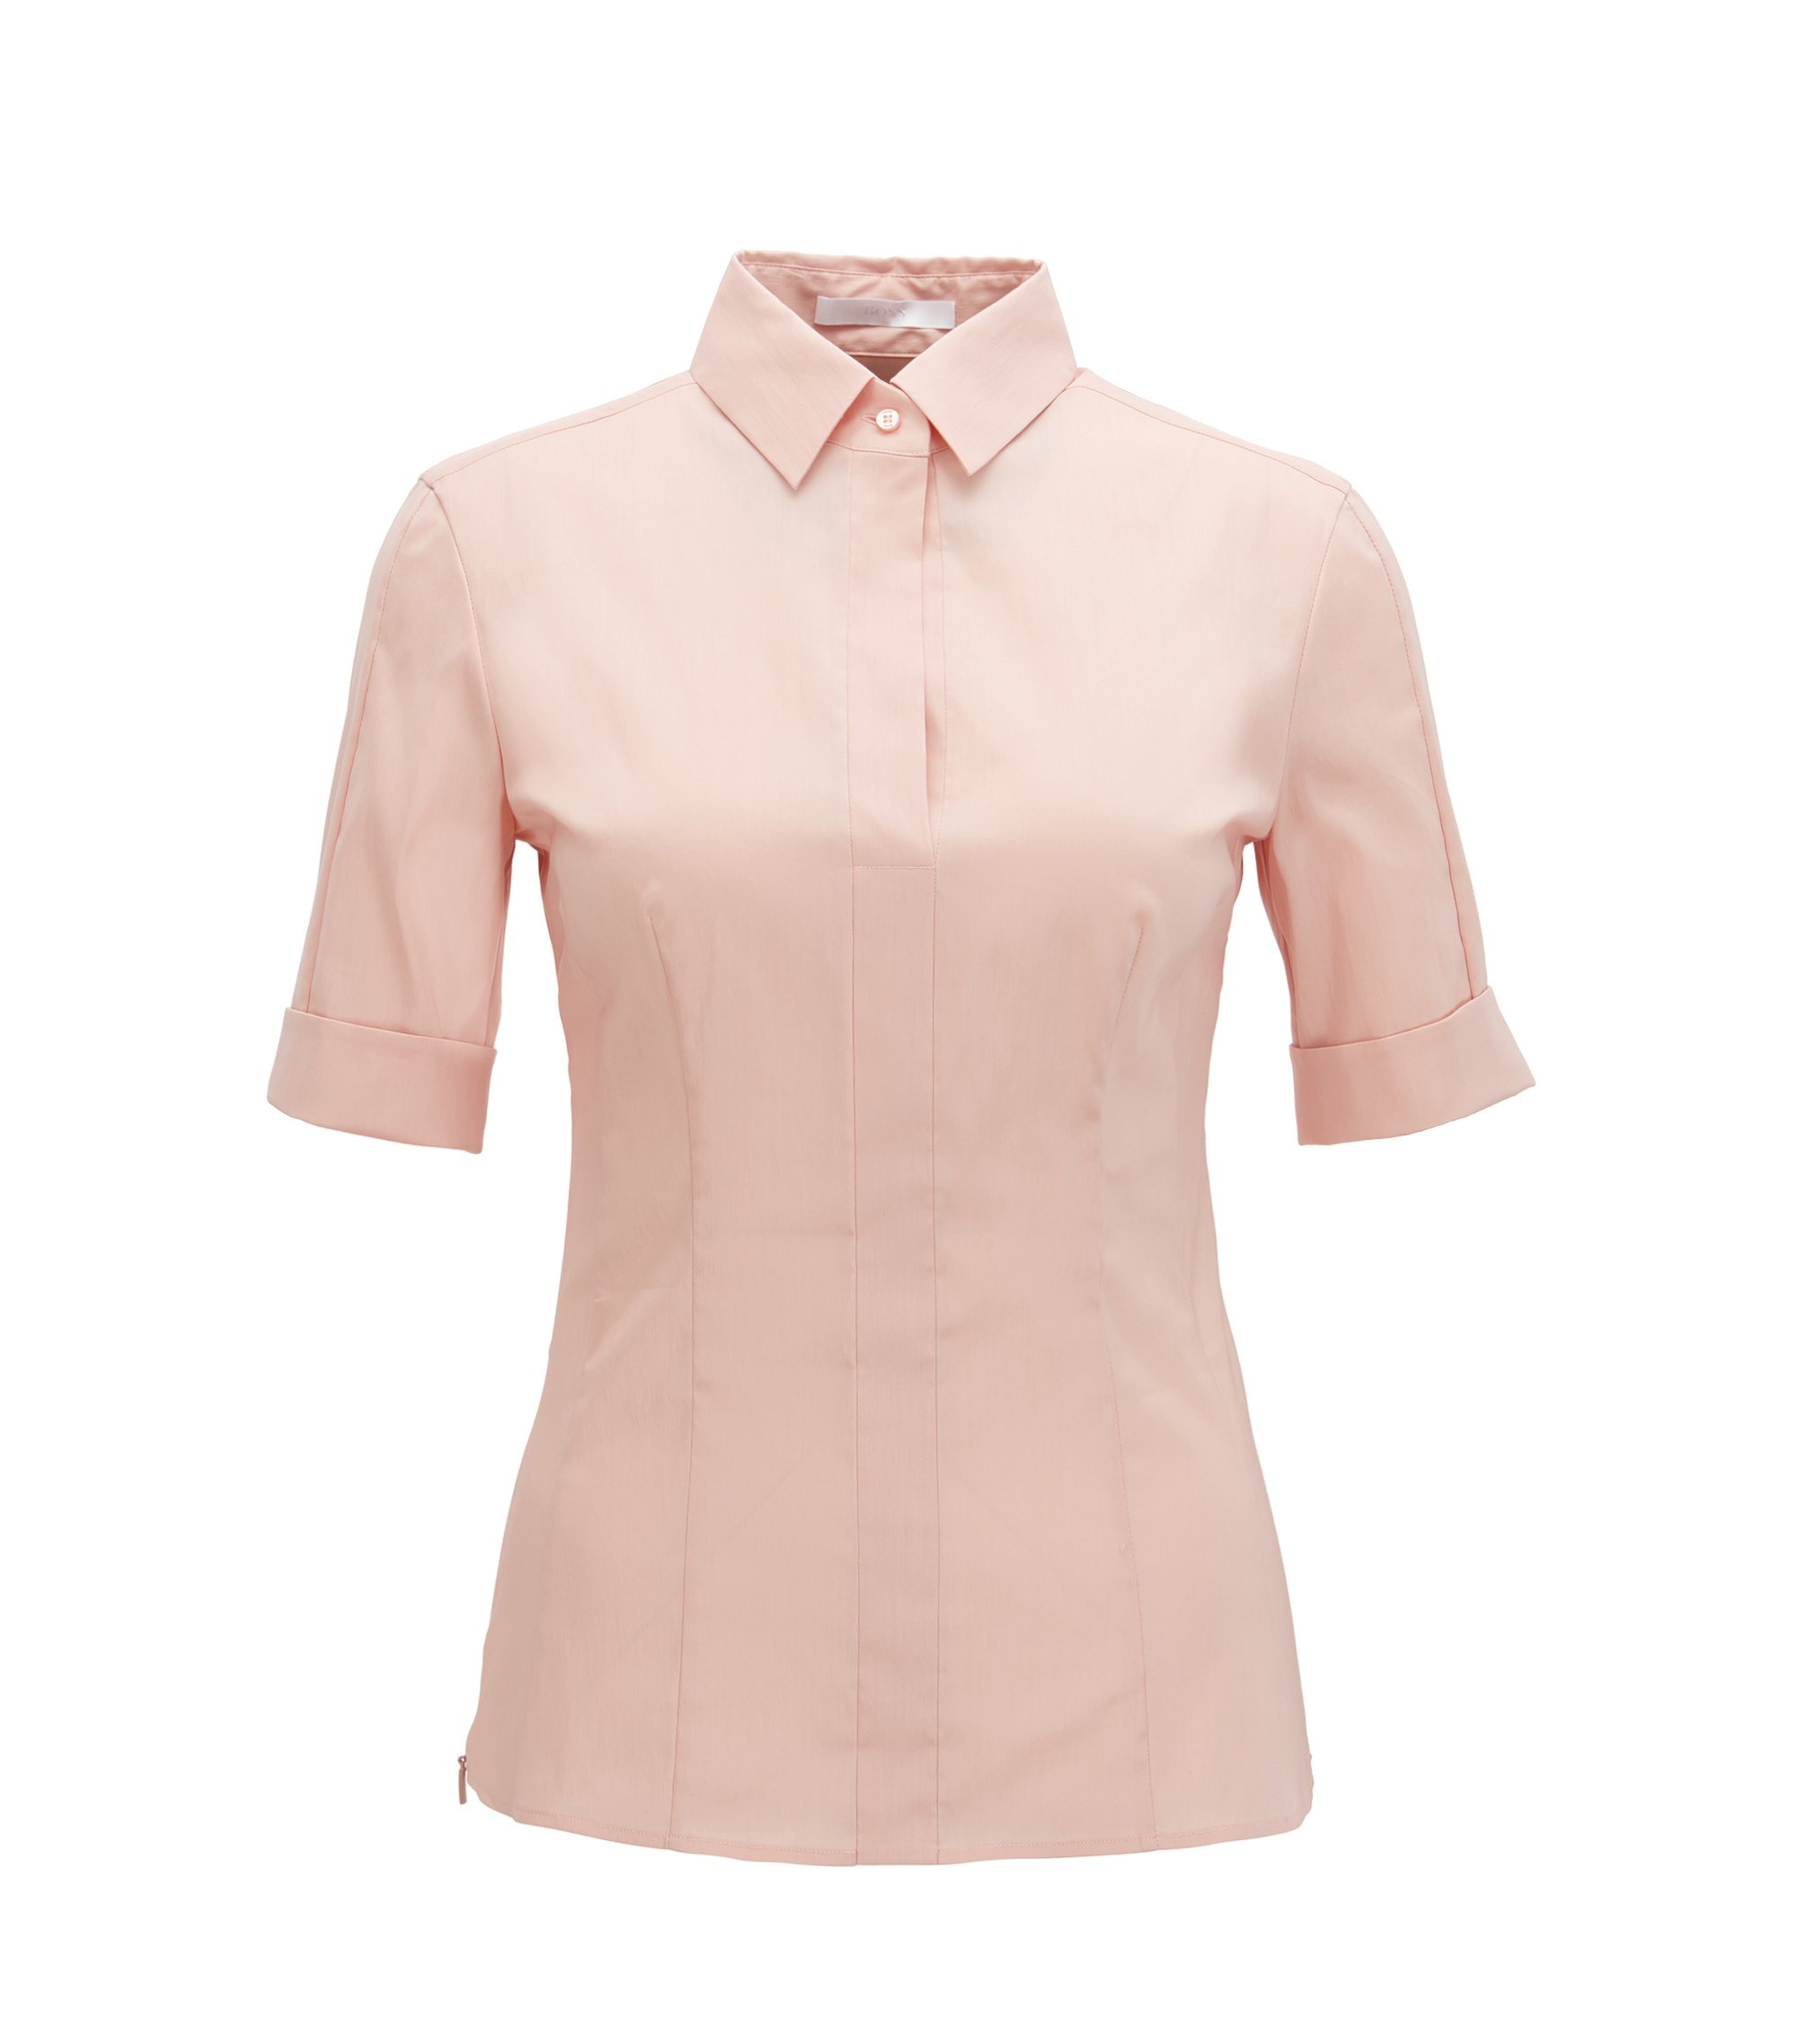 Slim-fit cotton-blend blouse with mock placket , light pink